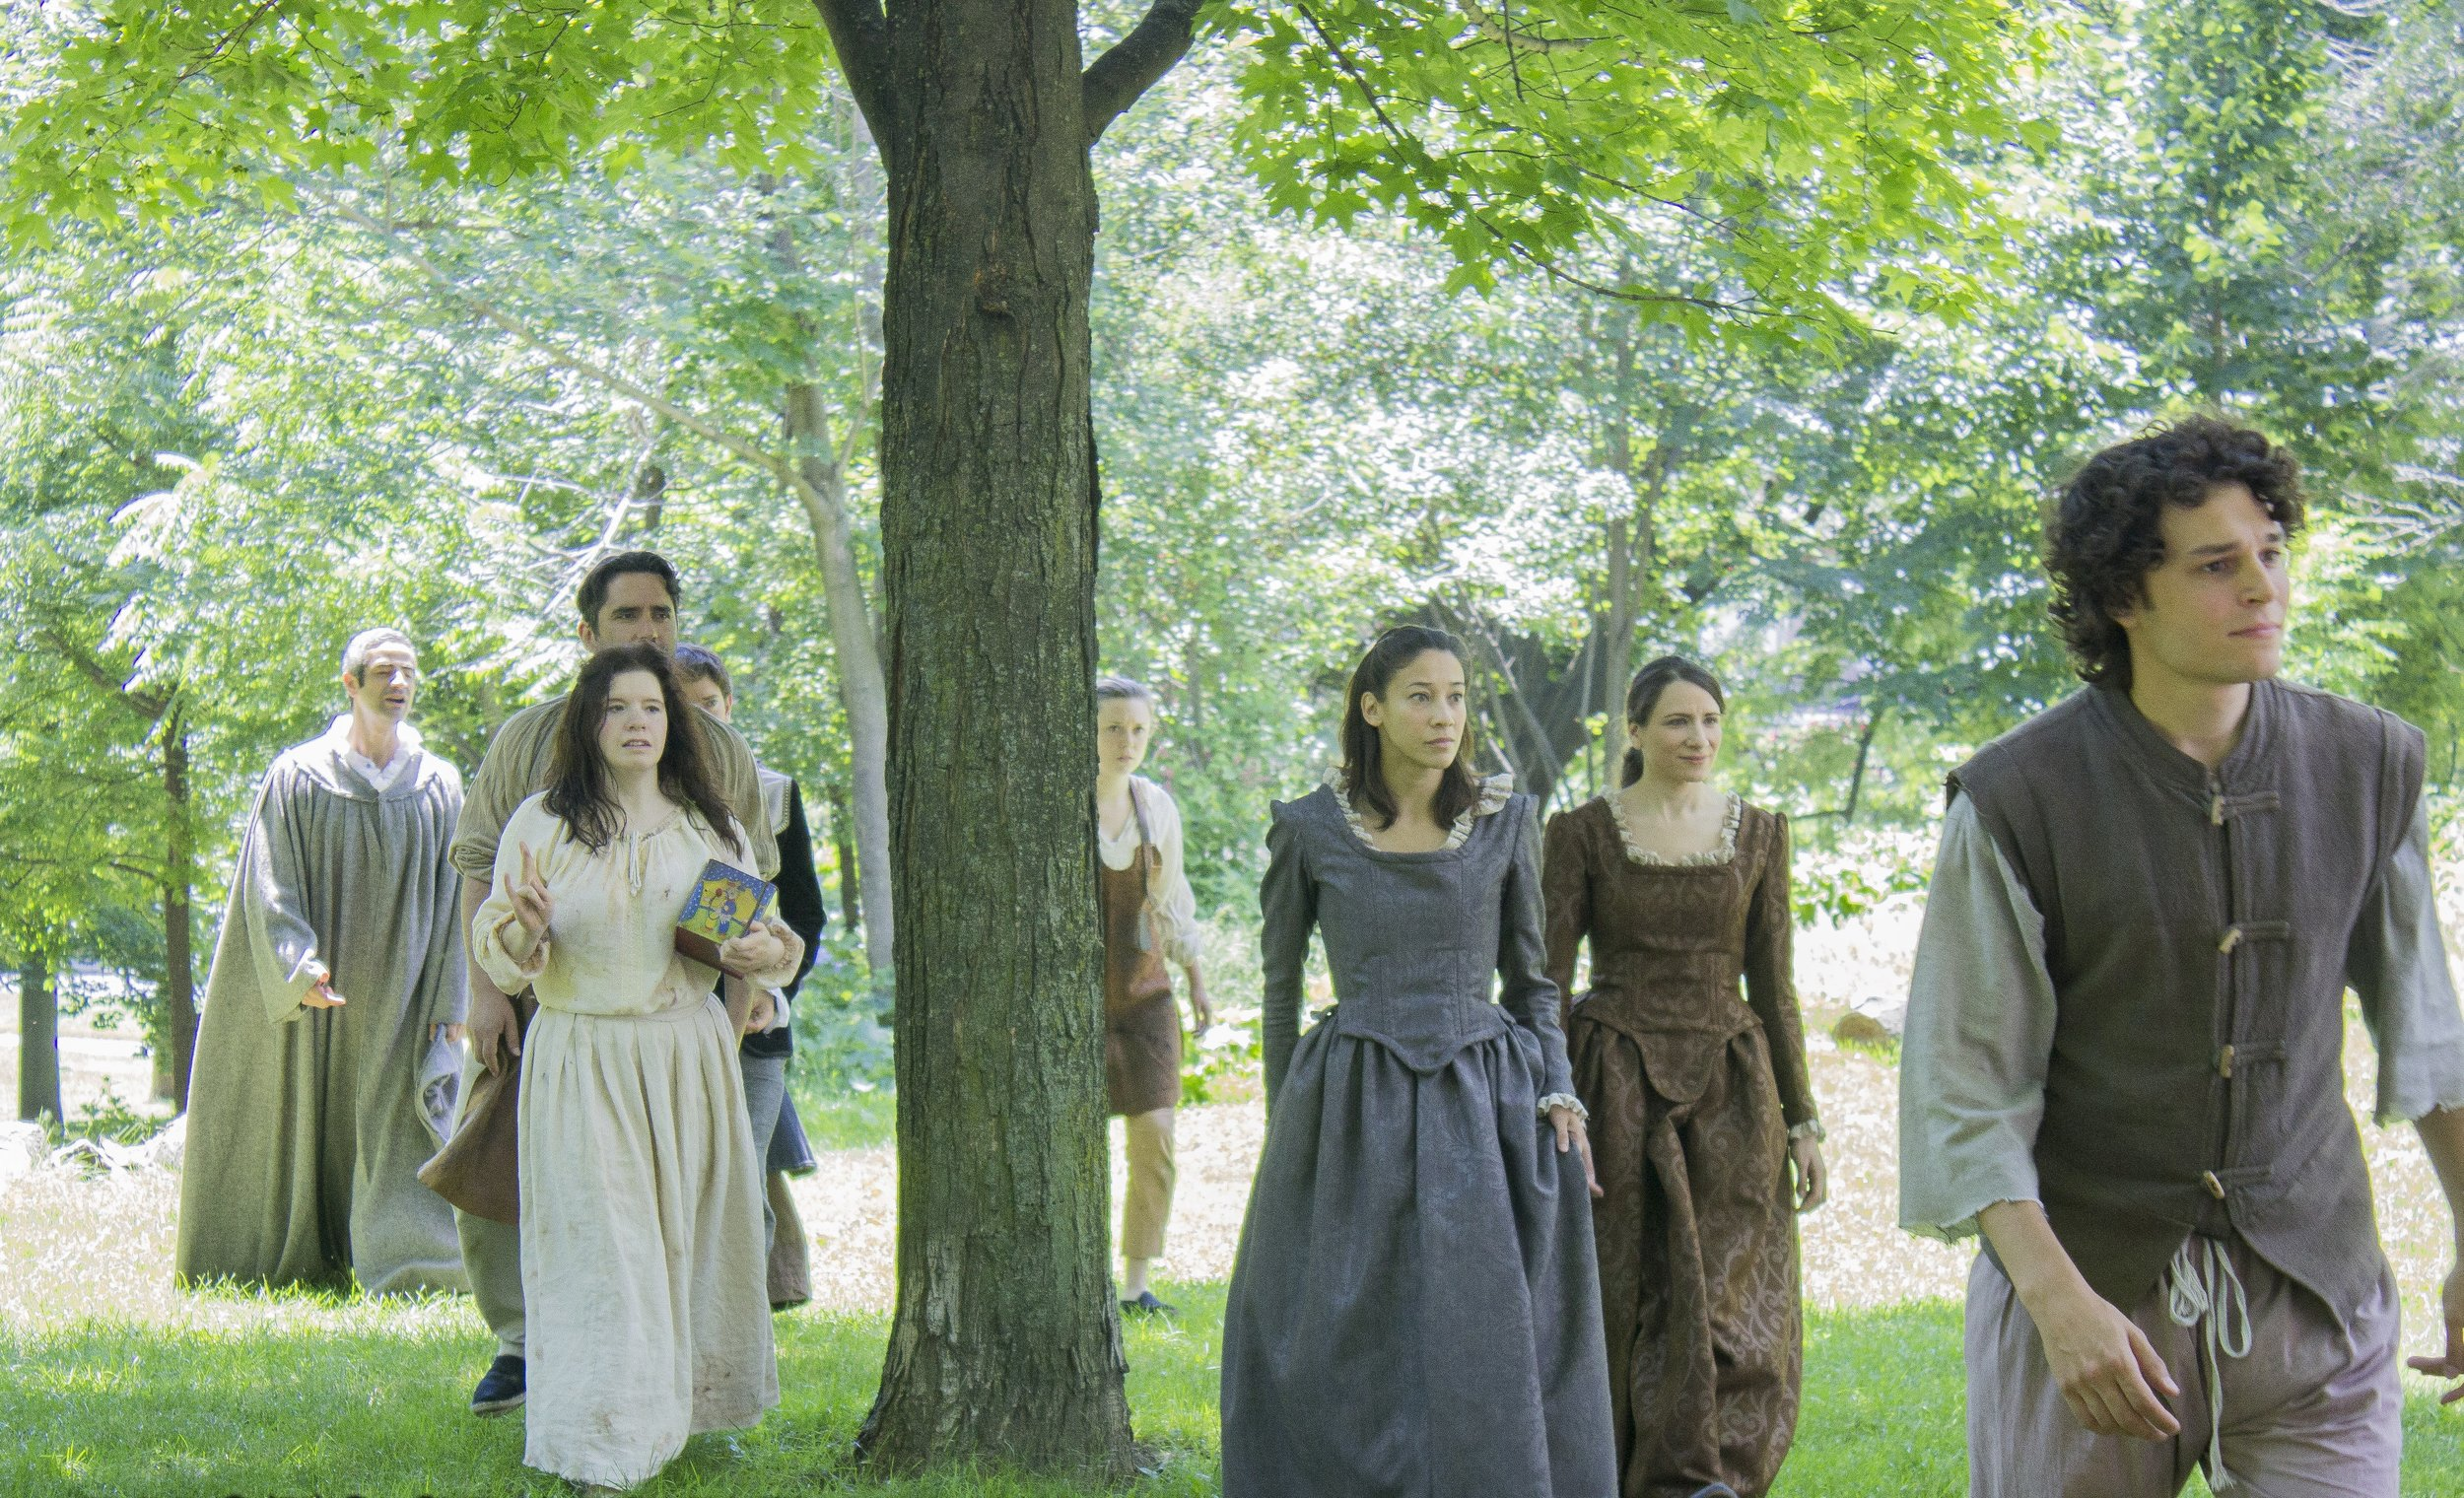 Members of the Passion Play Cast entering Withrow Park: (L-R) Sam Kalilieh, Jordan Pettle, Thrasso Petras, Amy Keating, Katherine Cullen, Julie Tepperman, Mayko Nguyen, and Andrew Kushnir